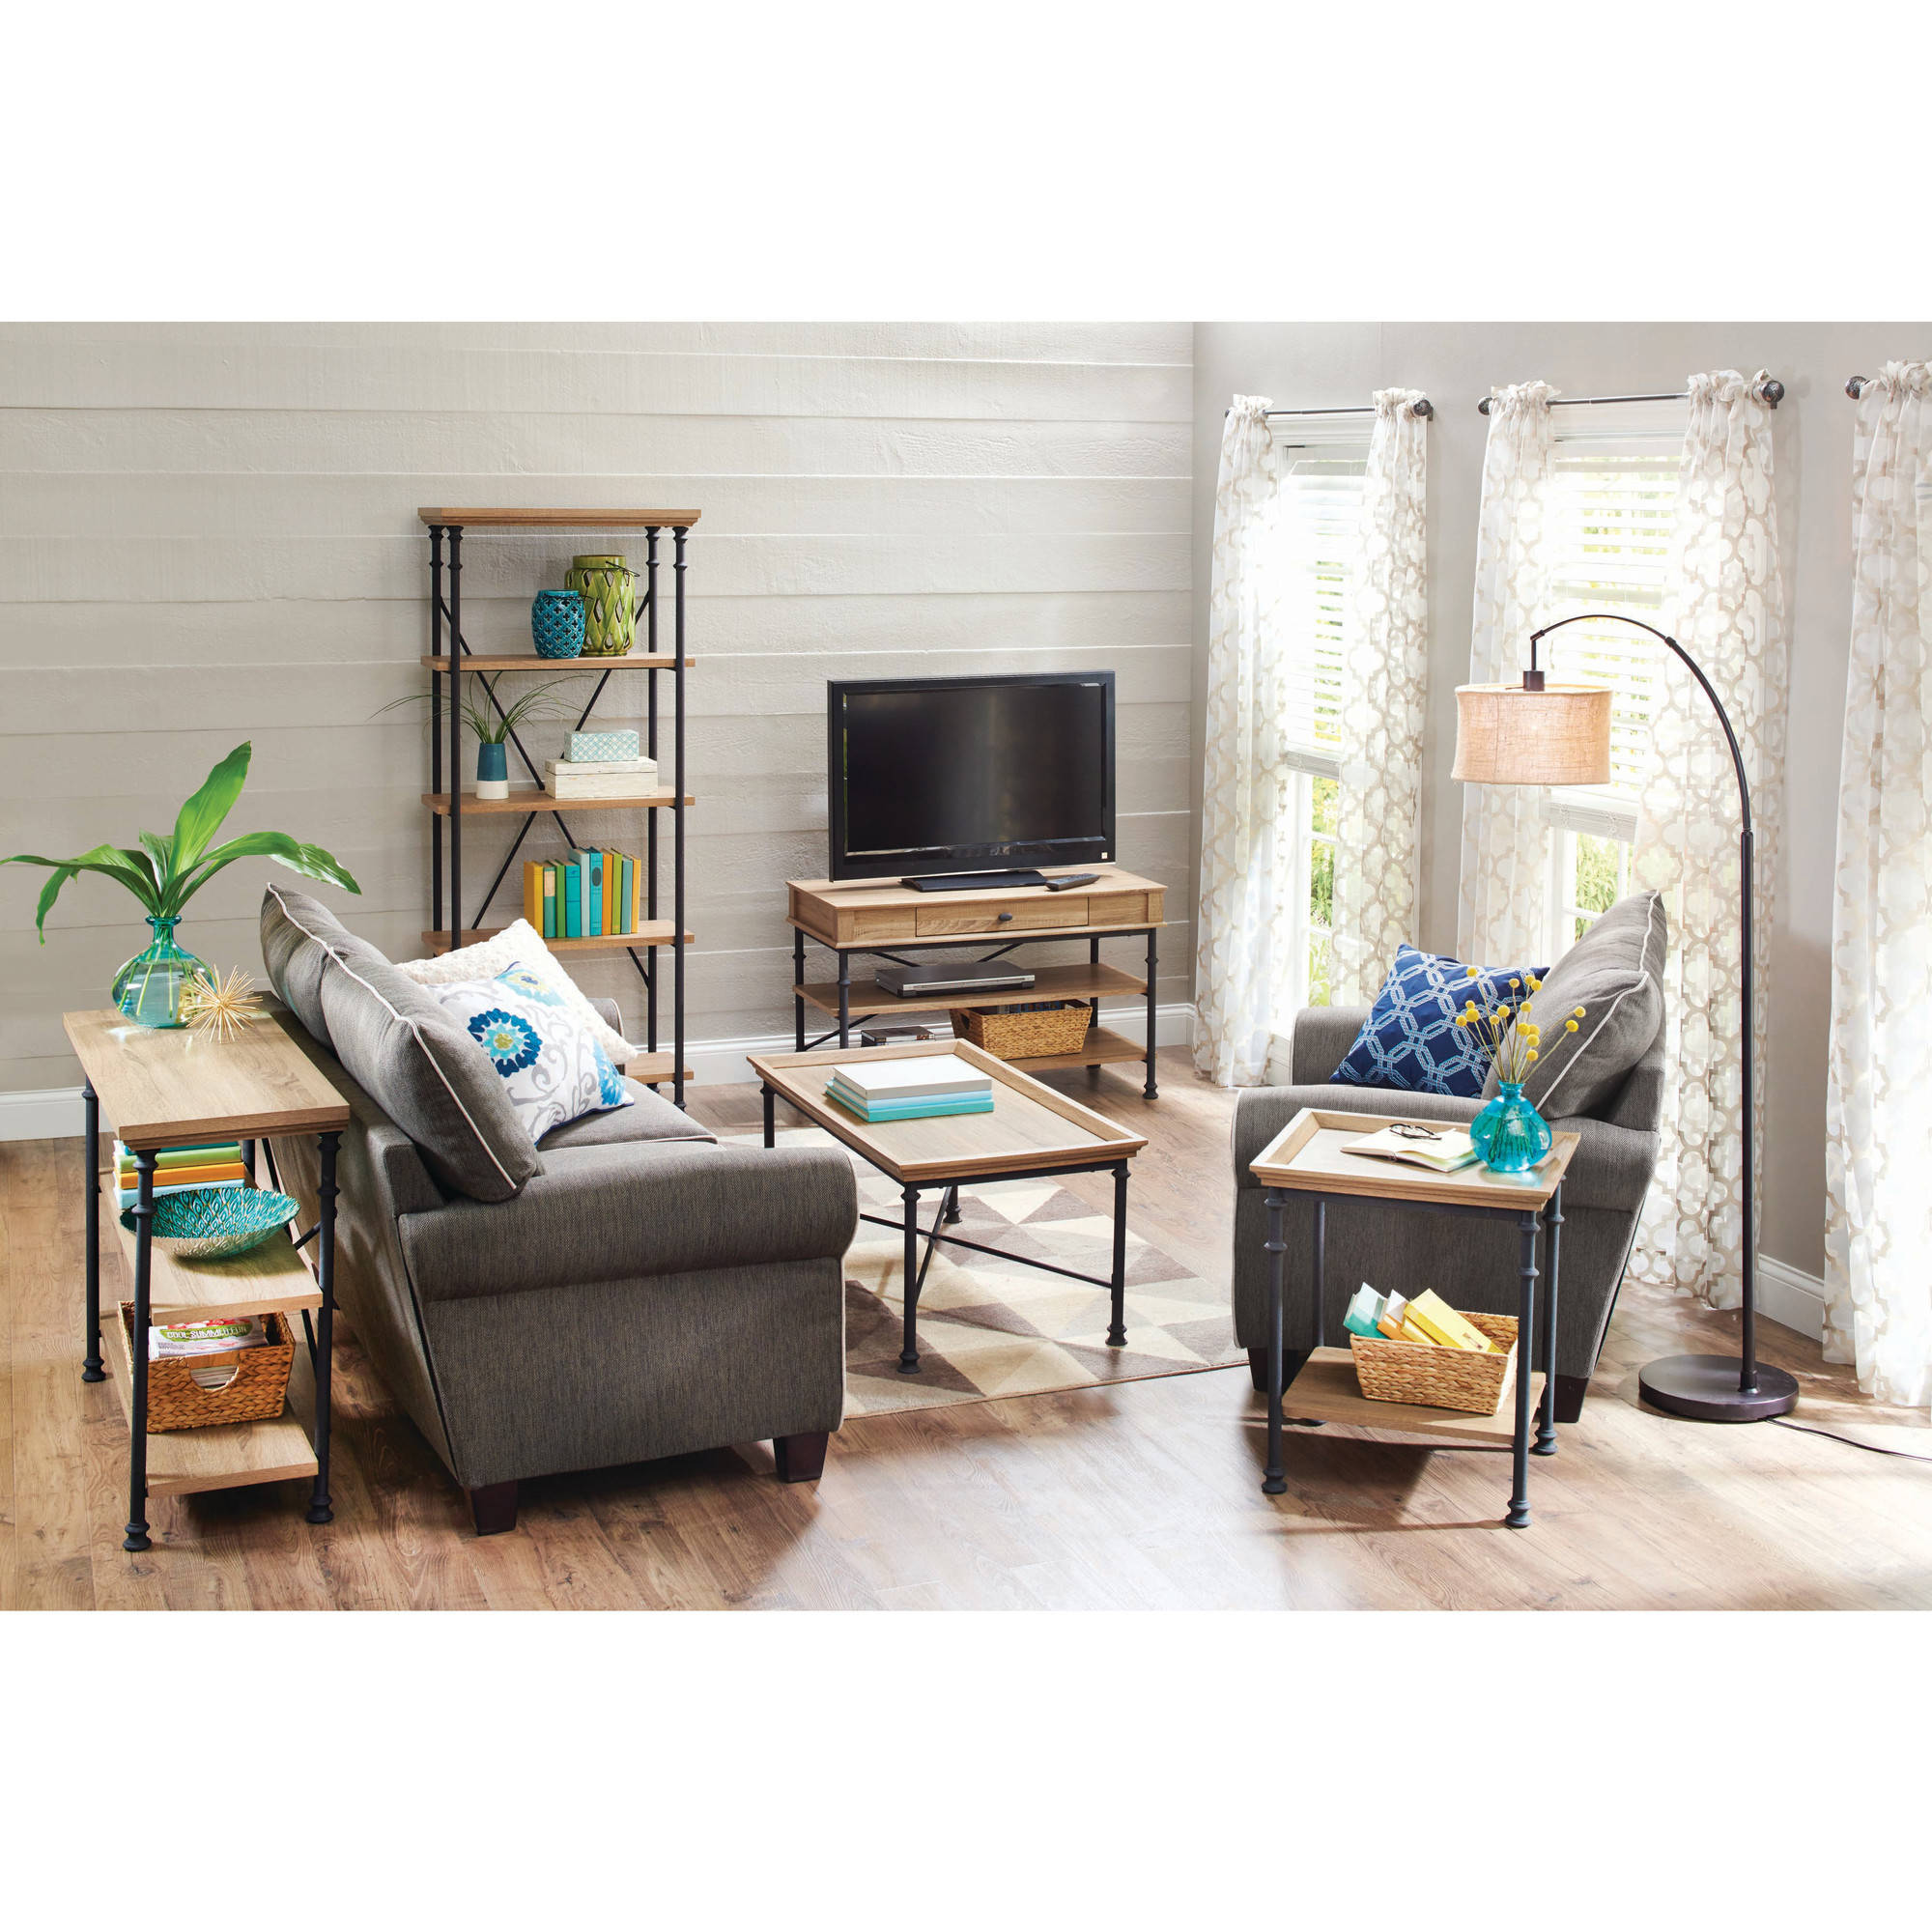 Better Homes and Gardens River Crest Furniture Collection